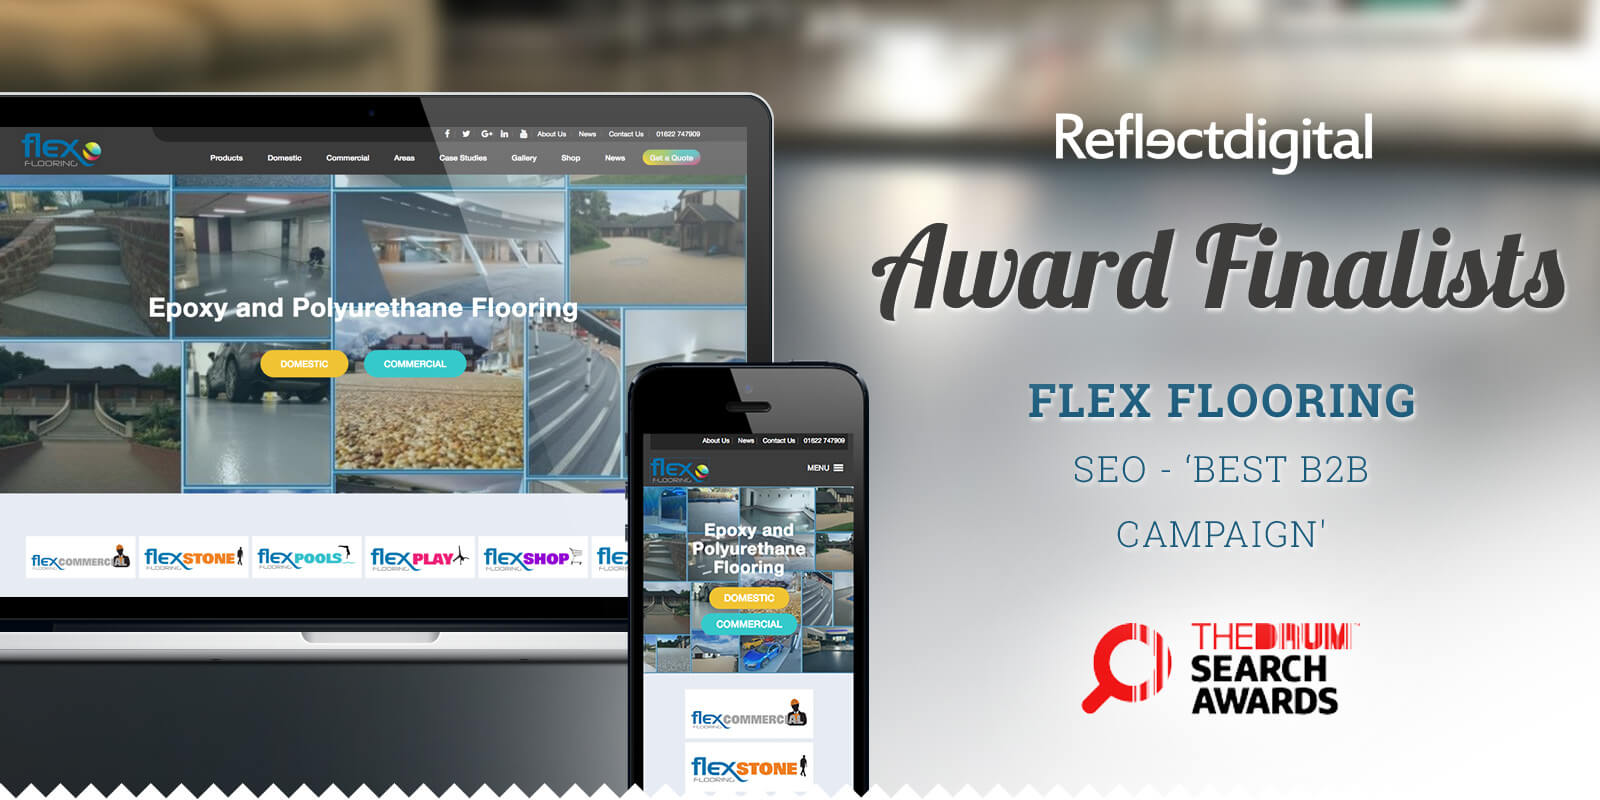 Drum Search Award Finalists - FlexFlooring